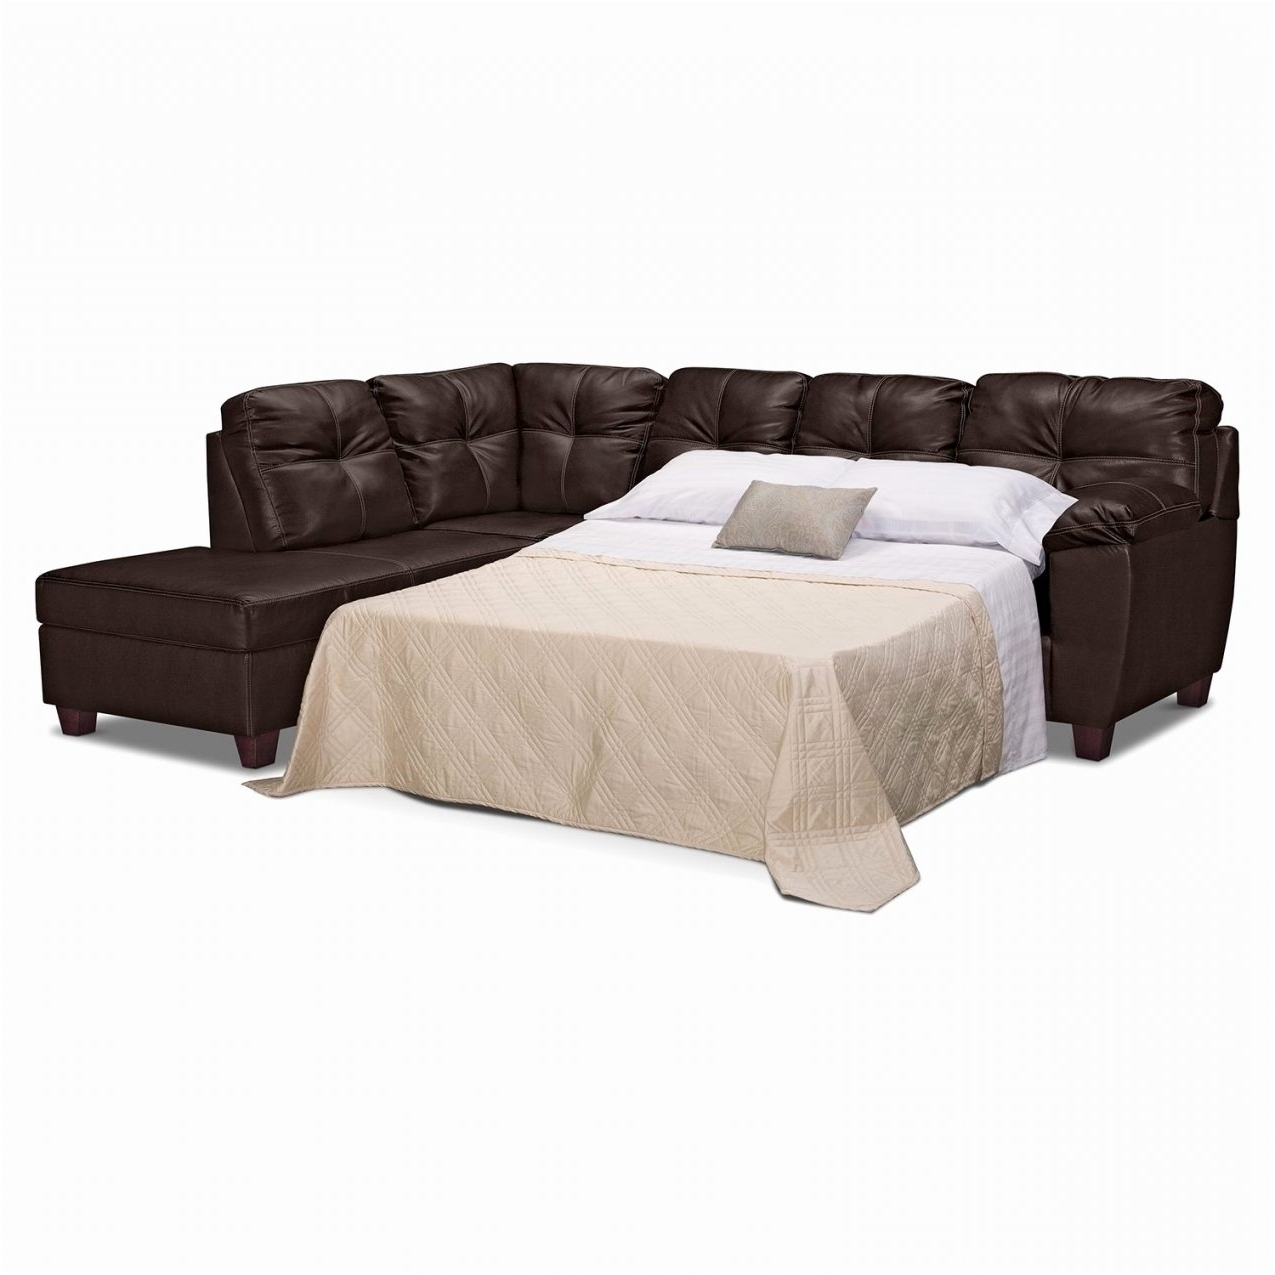 Sleeper Sofa Ikea Sectional Sofa Bed Fabric Sectional With Leather Inside Best And Newest Ikea Sectional Sleeper Sofas (View 17 of 20)